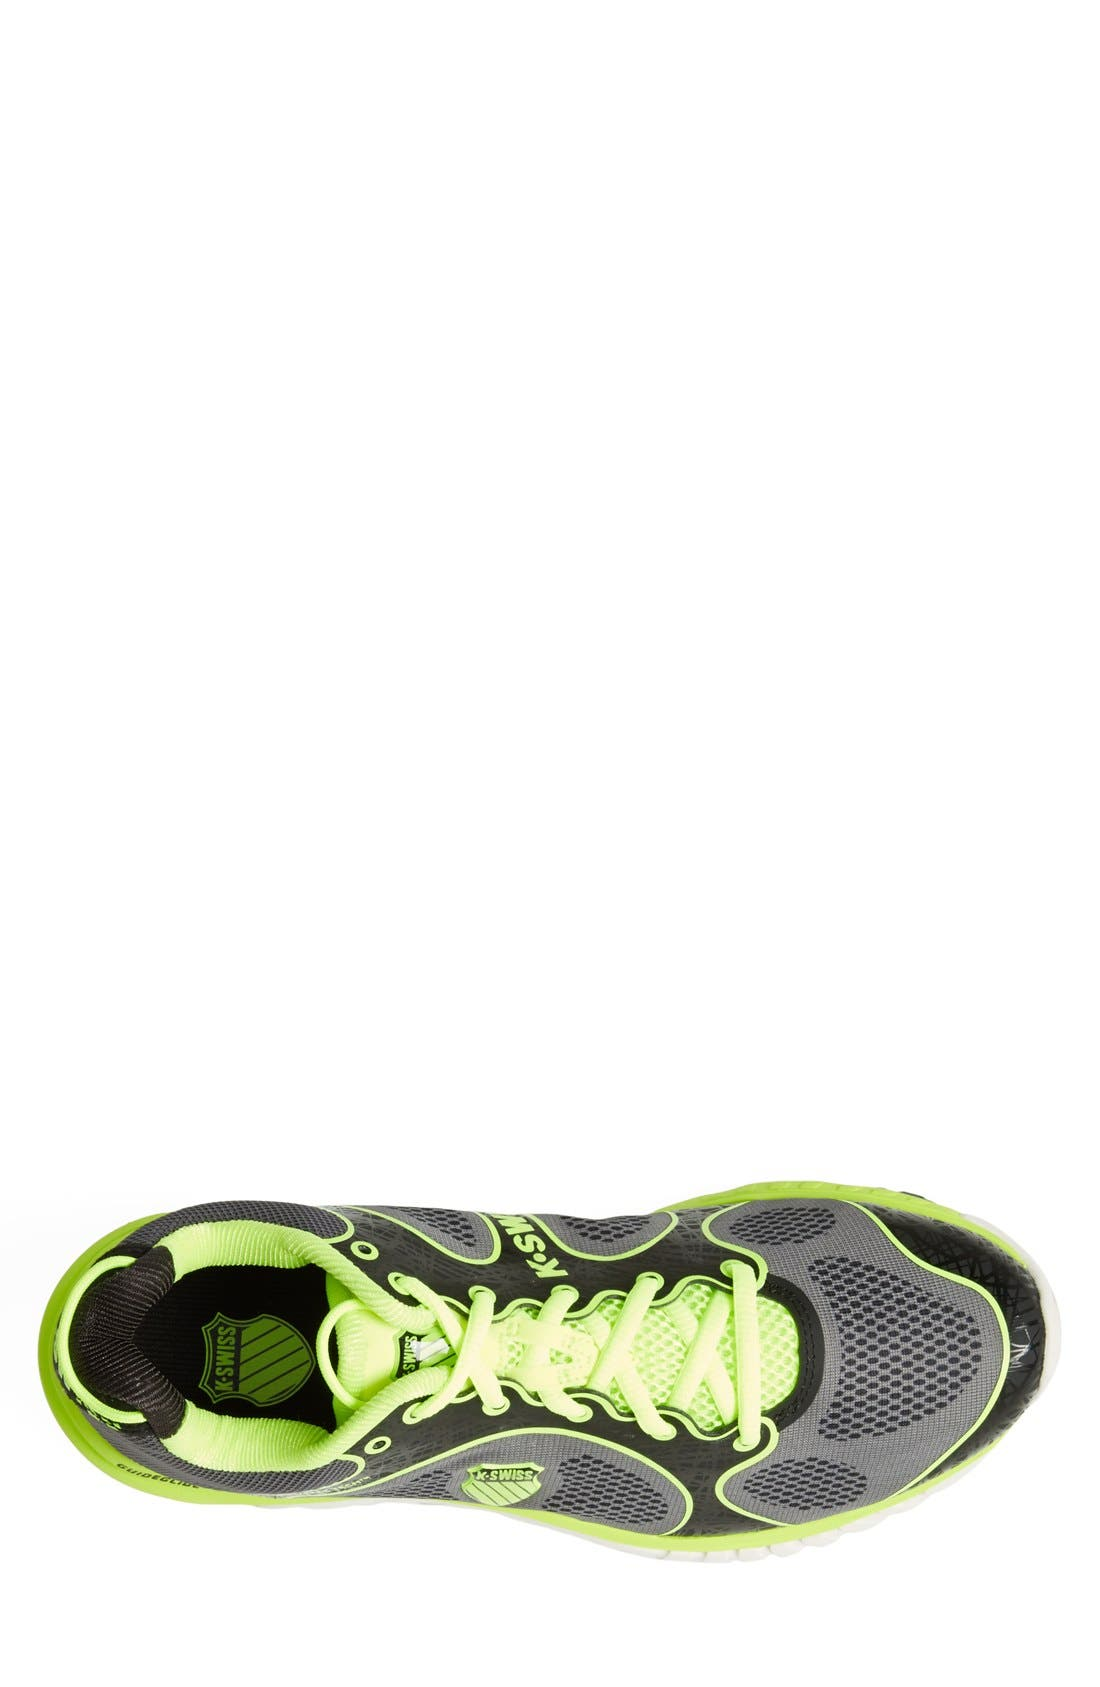 Alternate Image 3  - K-Swiss 'KBL 2 Neutral' Running Shoe (Men)